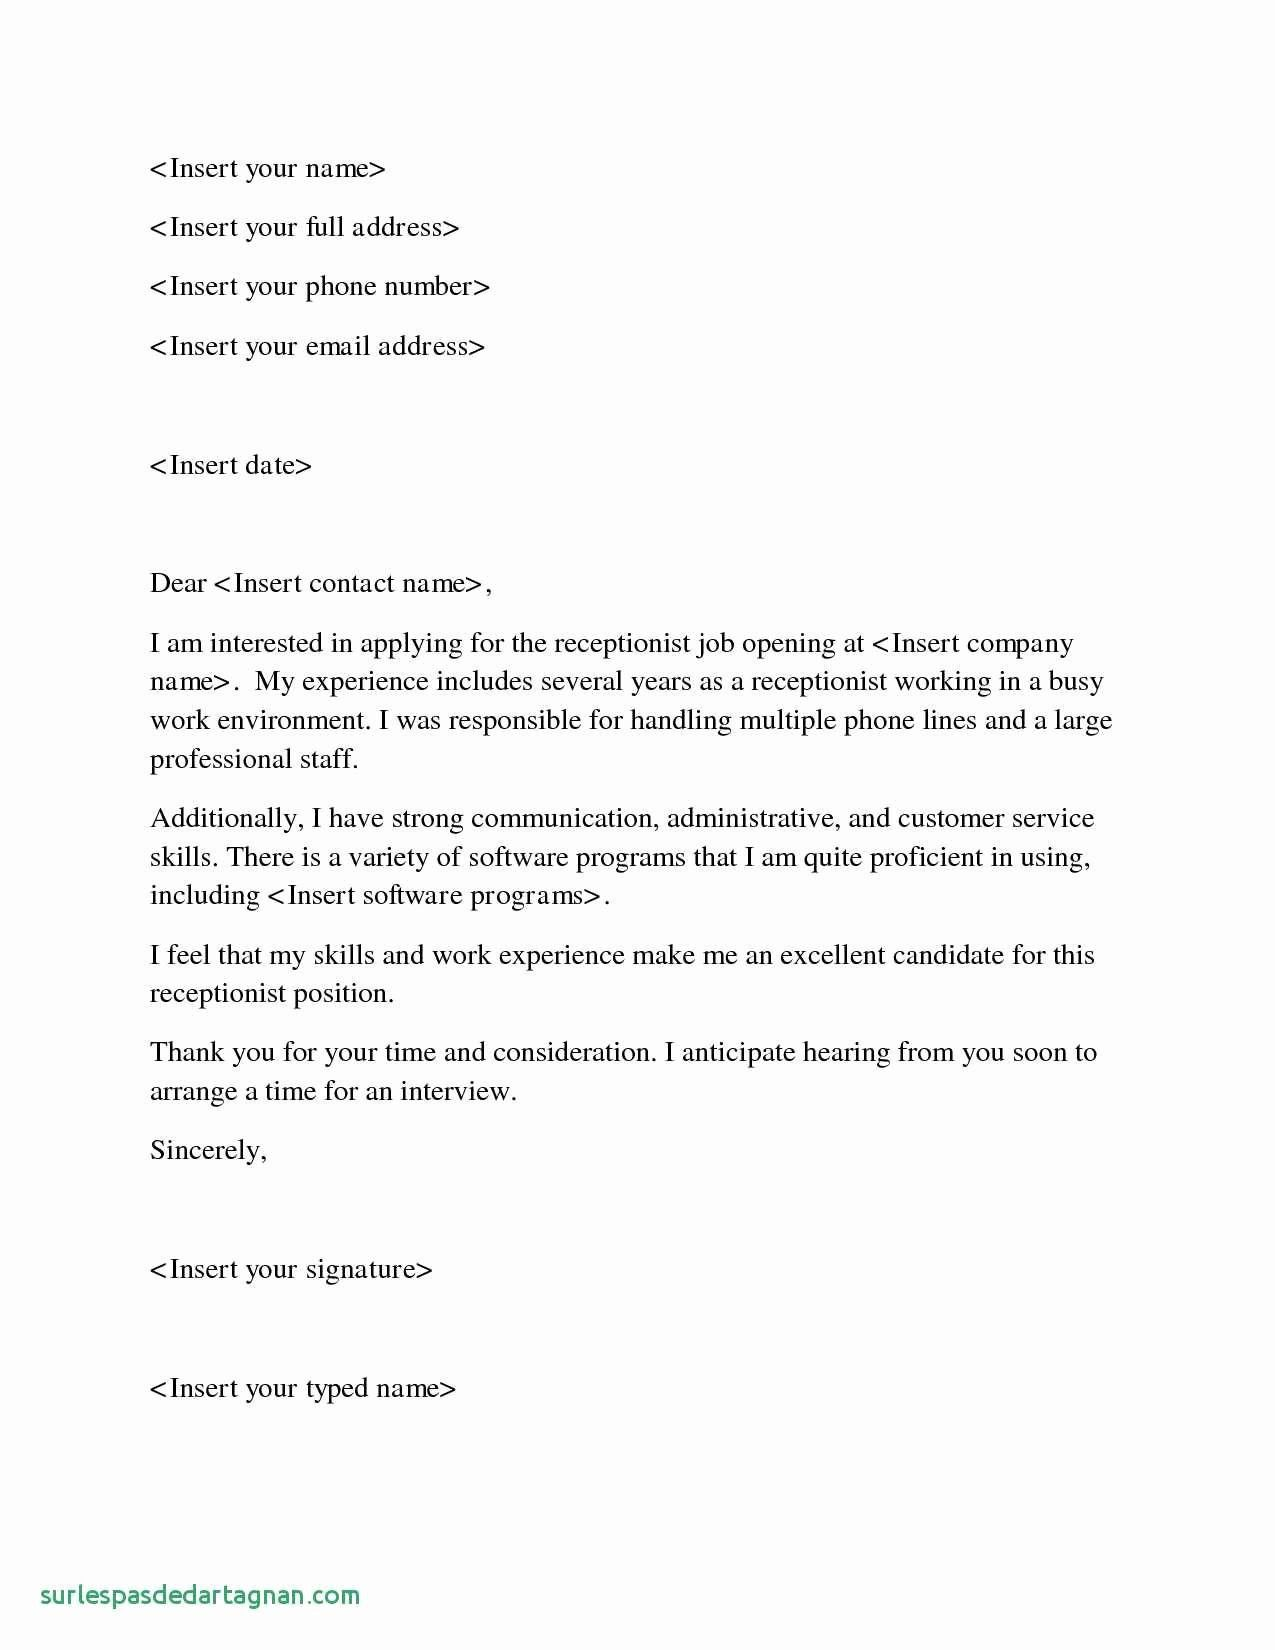 Acquisitions Editor Cover Letter 26 Medical Receptionist Cover Letter Medical Receptionist Cover